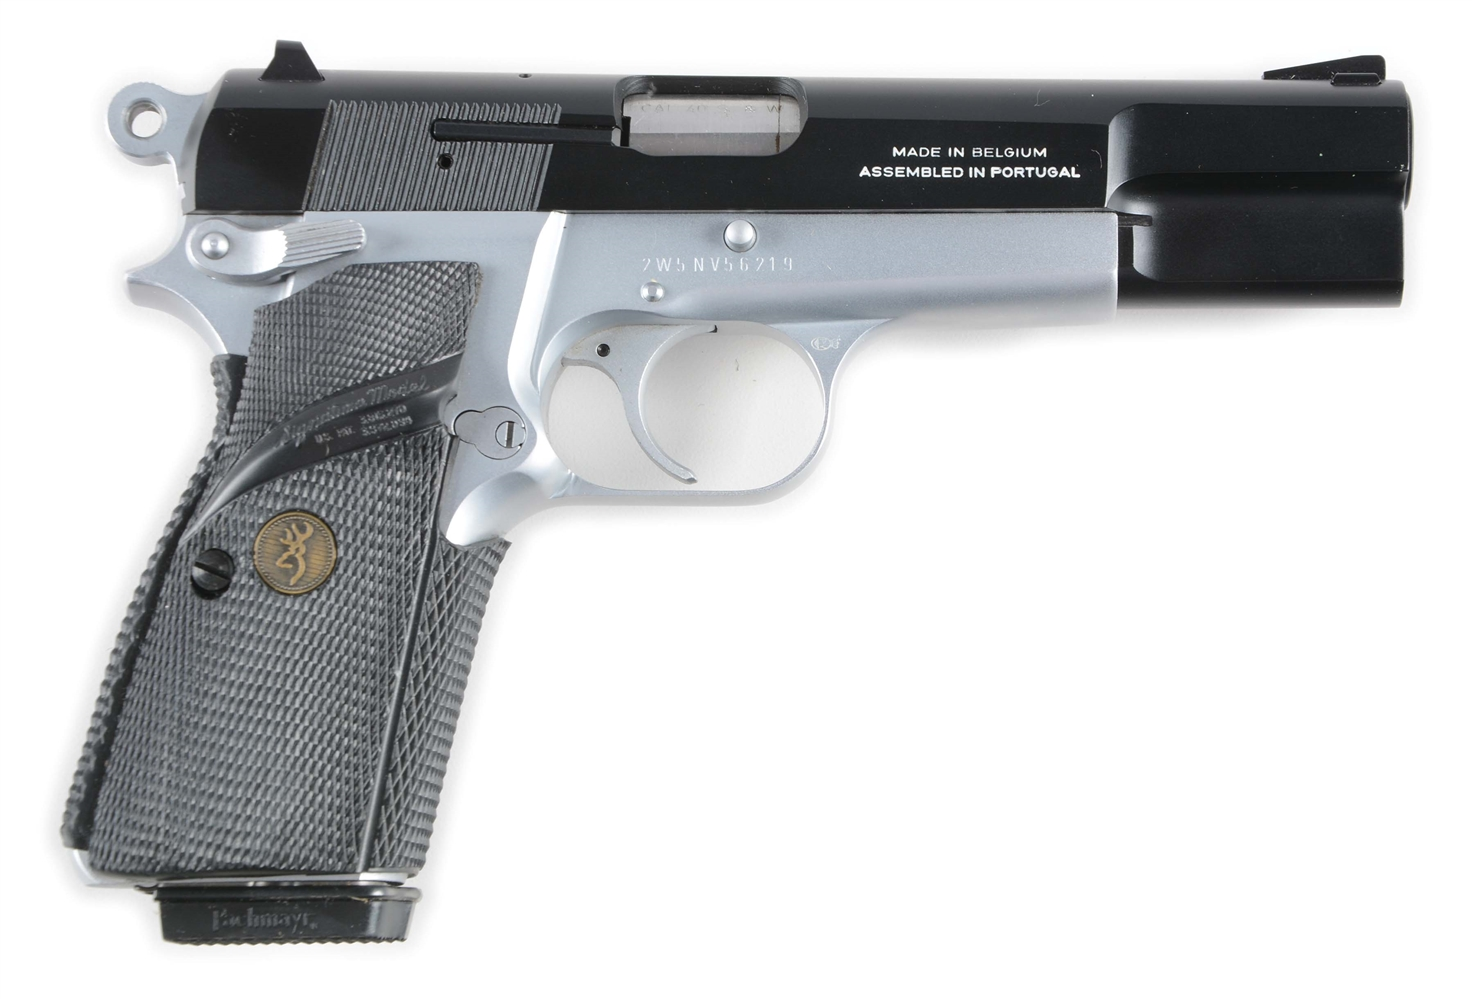 (M) Cased Browning Hi-Power Practical .40 Caliber Semi-Automatic Pistol.